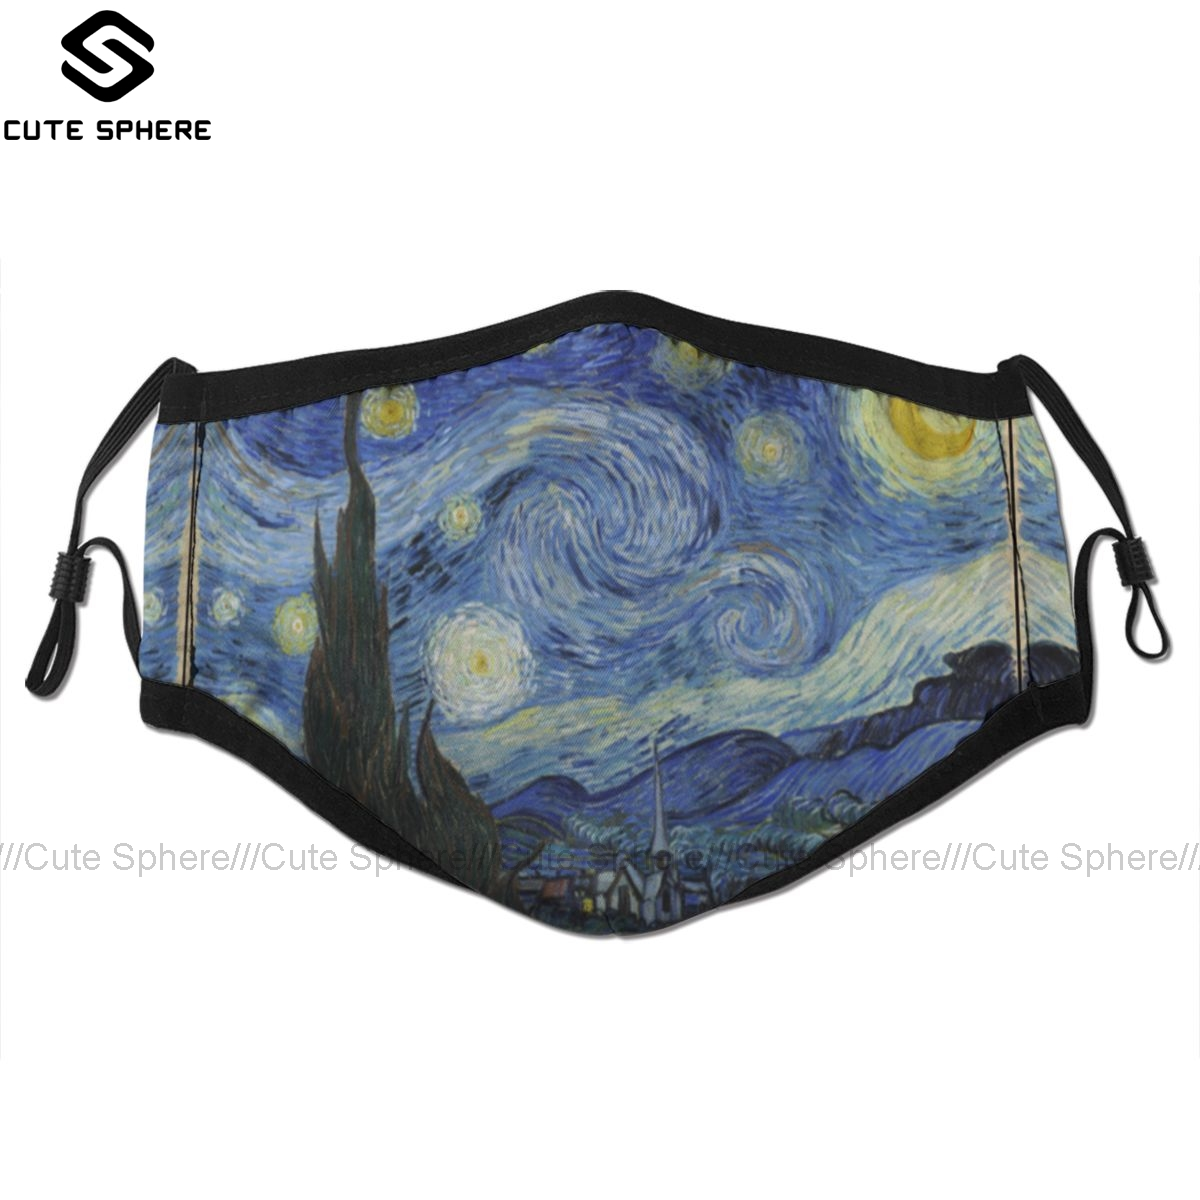 Starry Sky Mouth Face Mask Starry Night Vincent Van Gogh Facial Mask Kawai Cool With 2 Filters For Adult